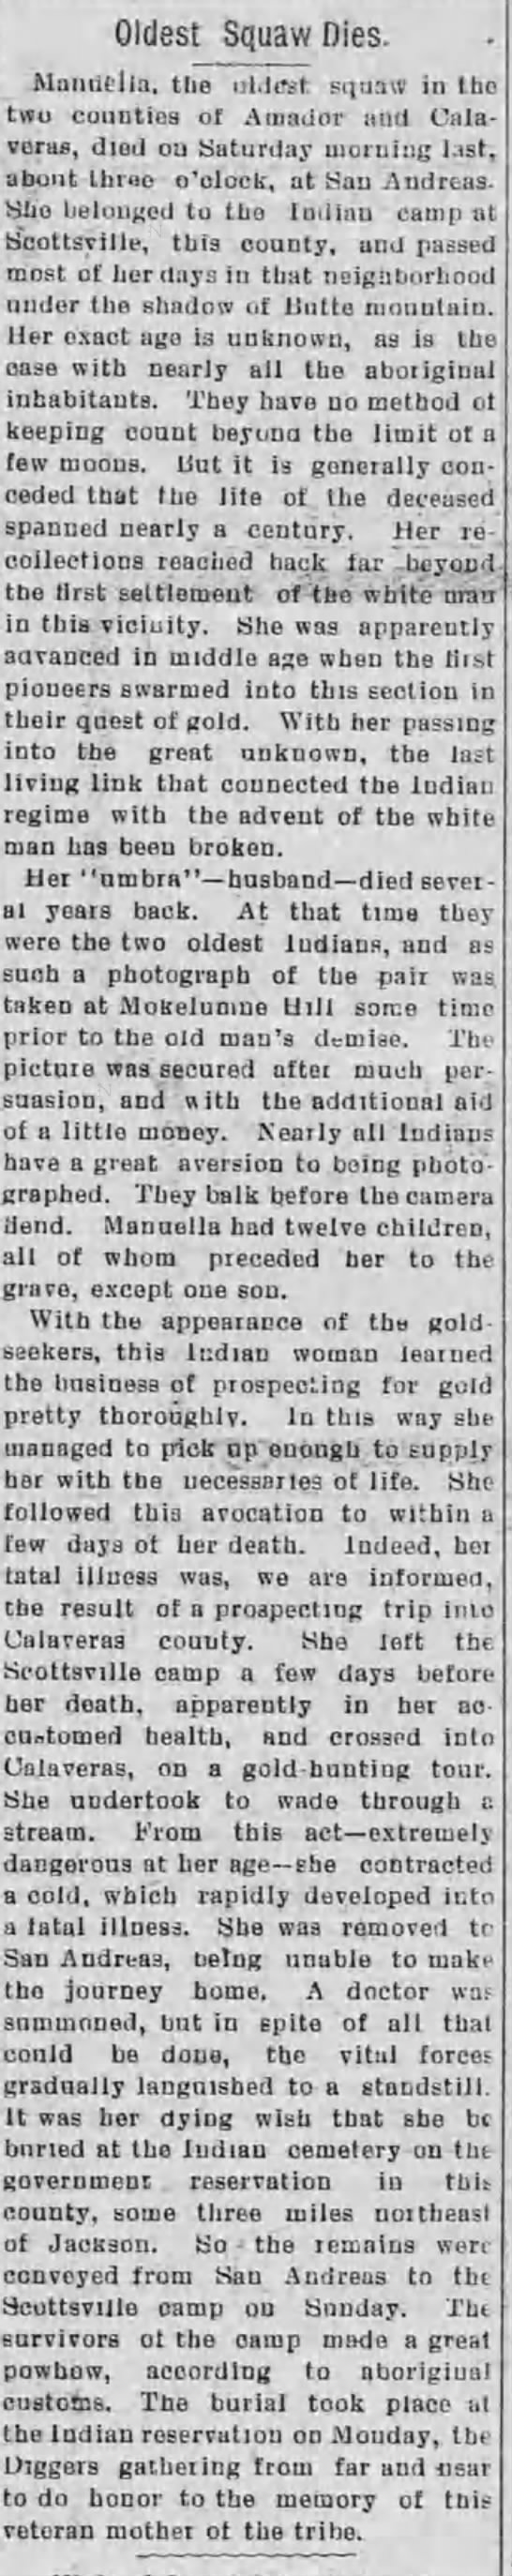 Old Indian dies, Manuella out lives 11 of her 12 children. May 1907 -